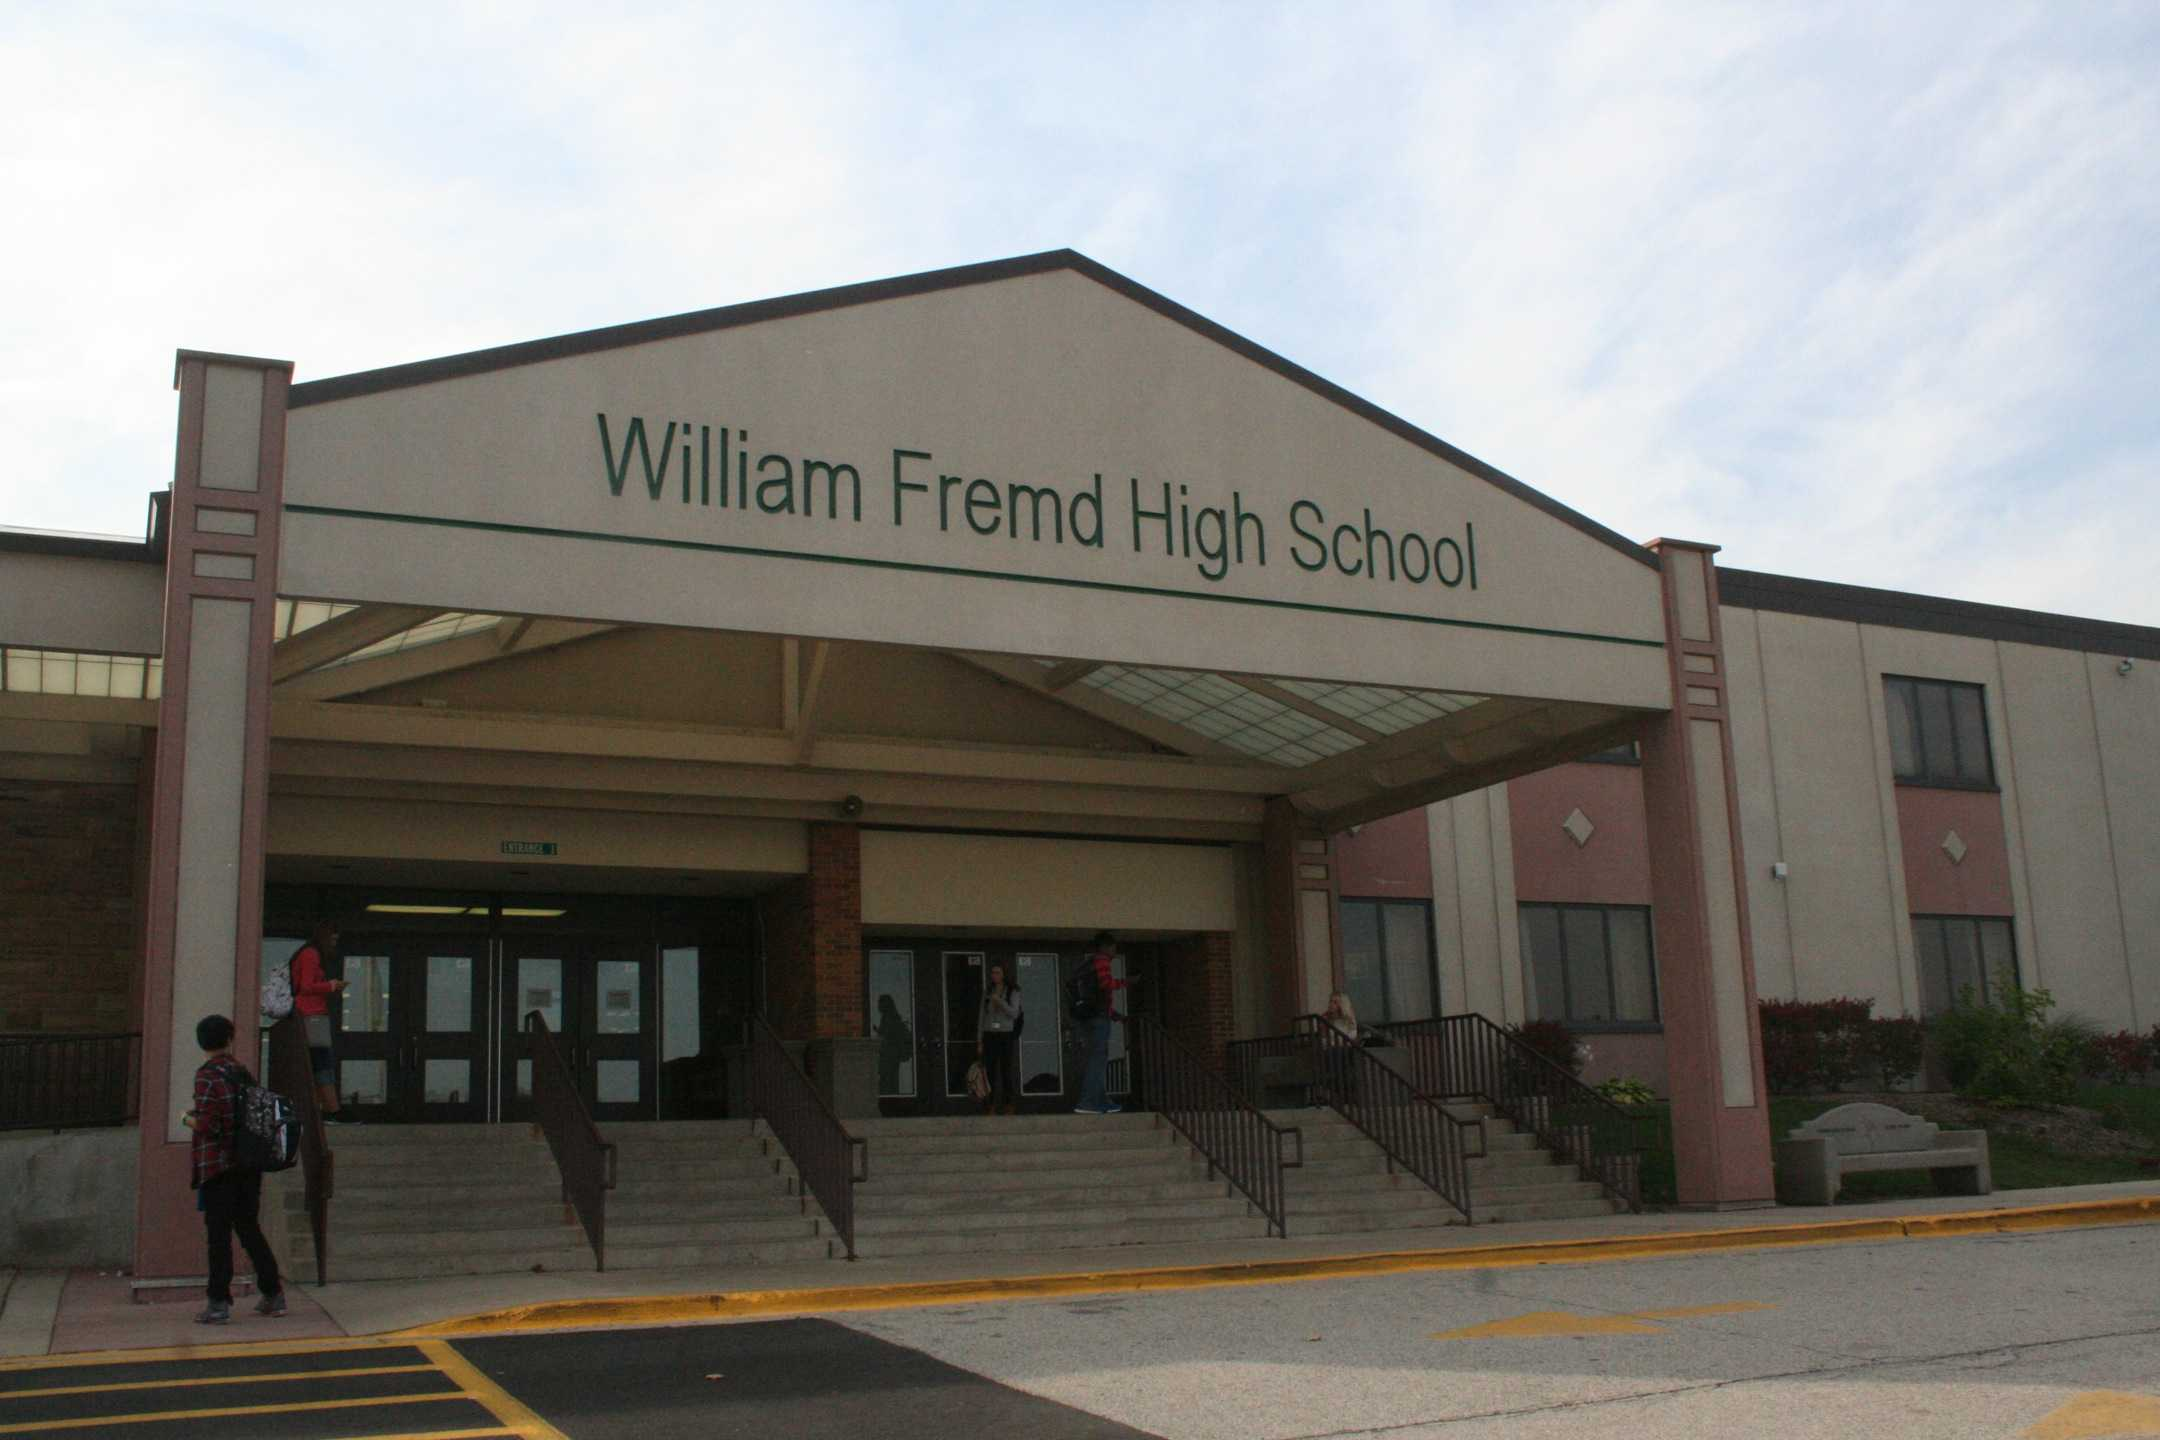 Fremd ranks 32 out of 708 schools, according to US News's release of 2014 Best High School Rankings.  Photo courtesy: Vibha Pandurangi